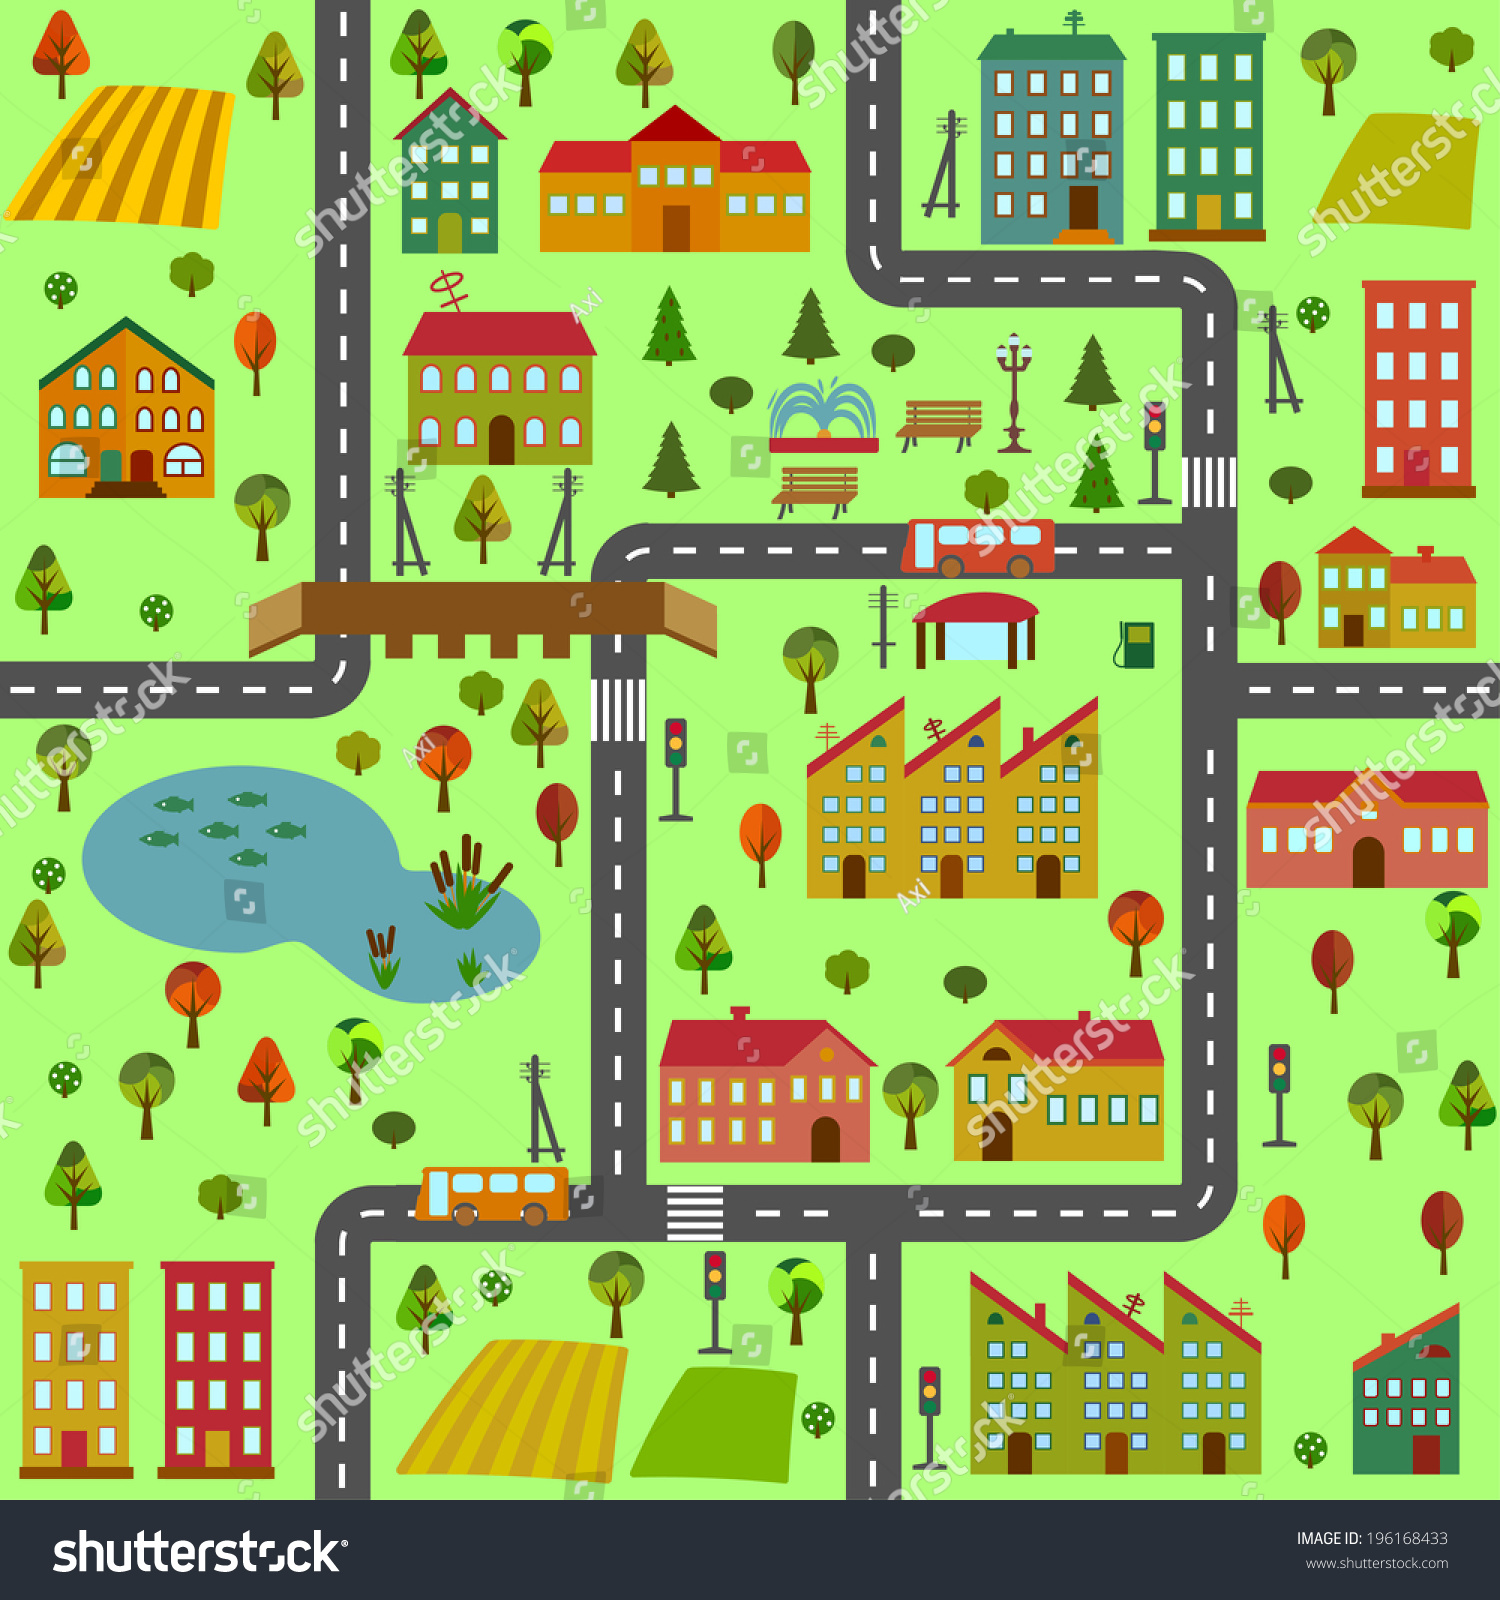 Cartoon Illustration Map City Different Houses Stock